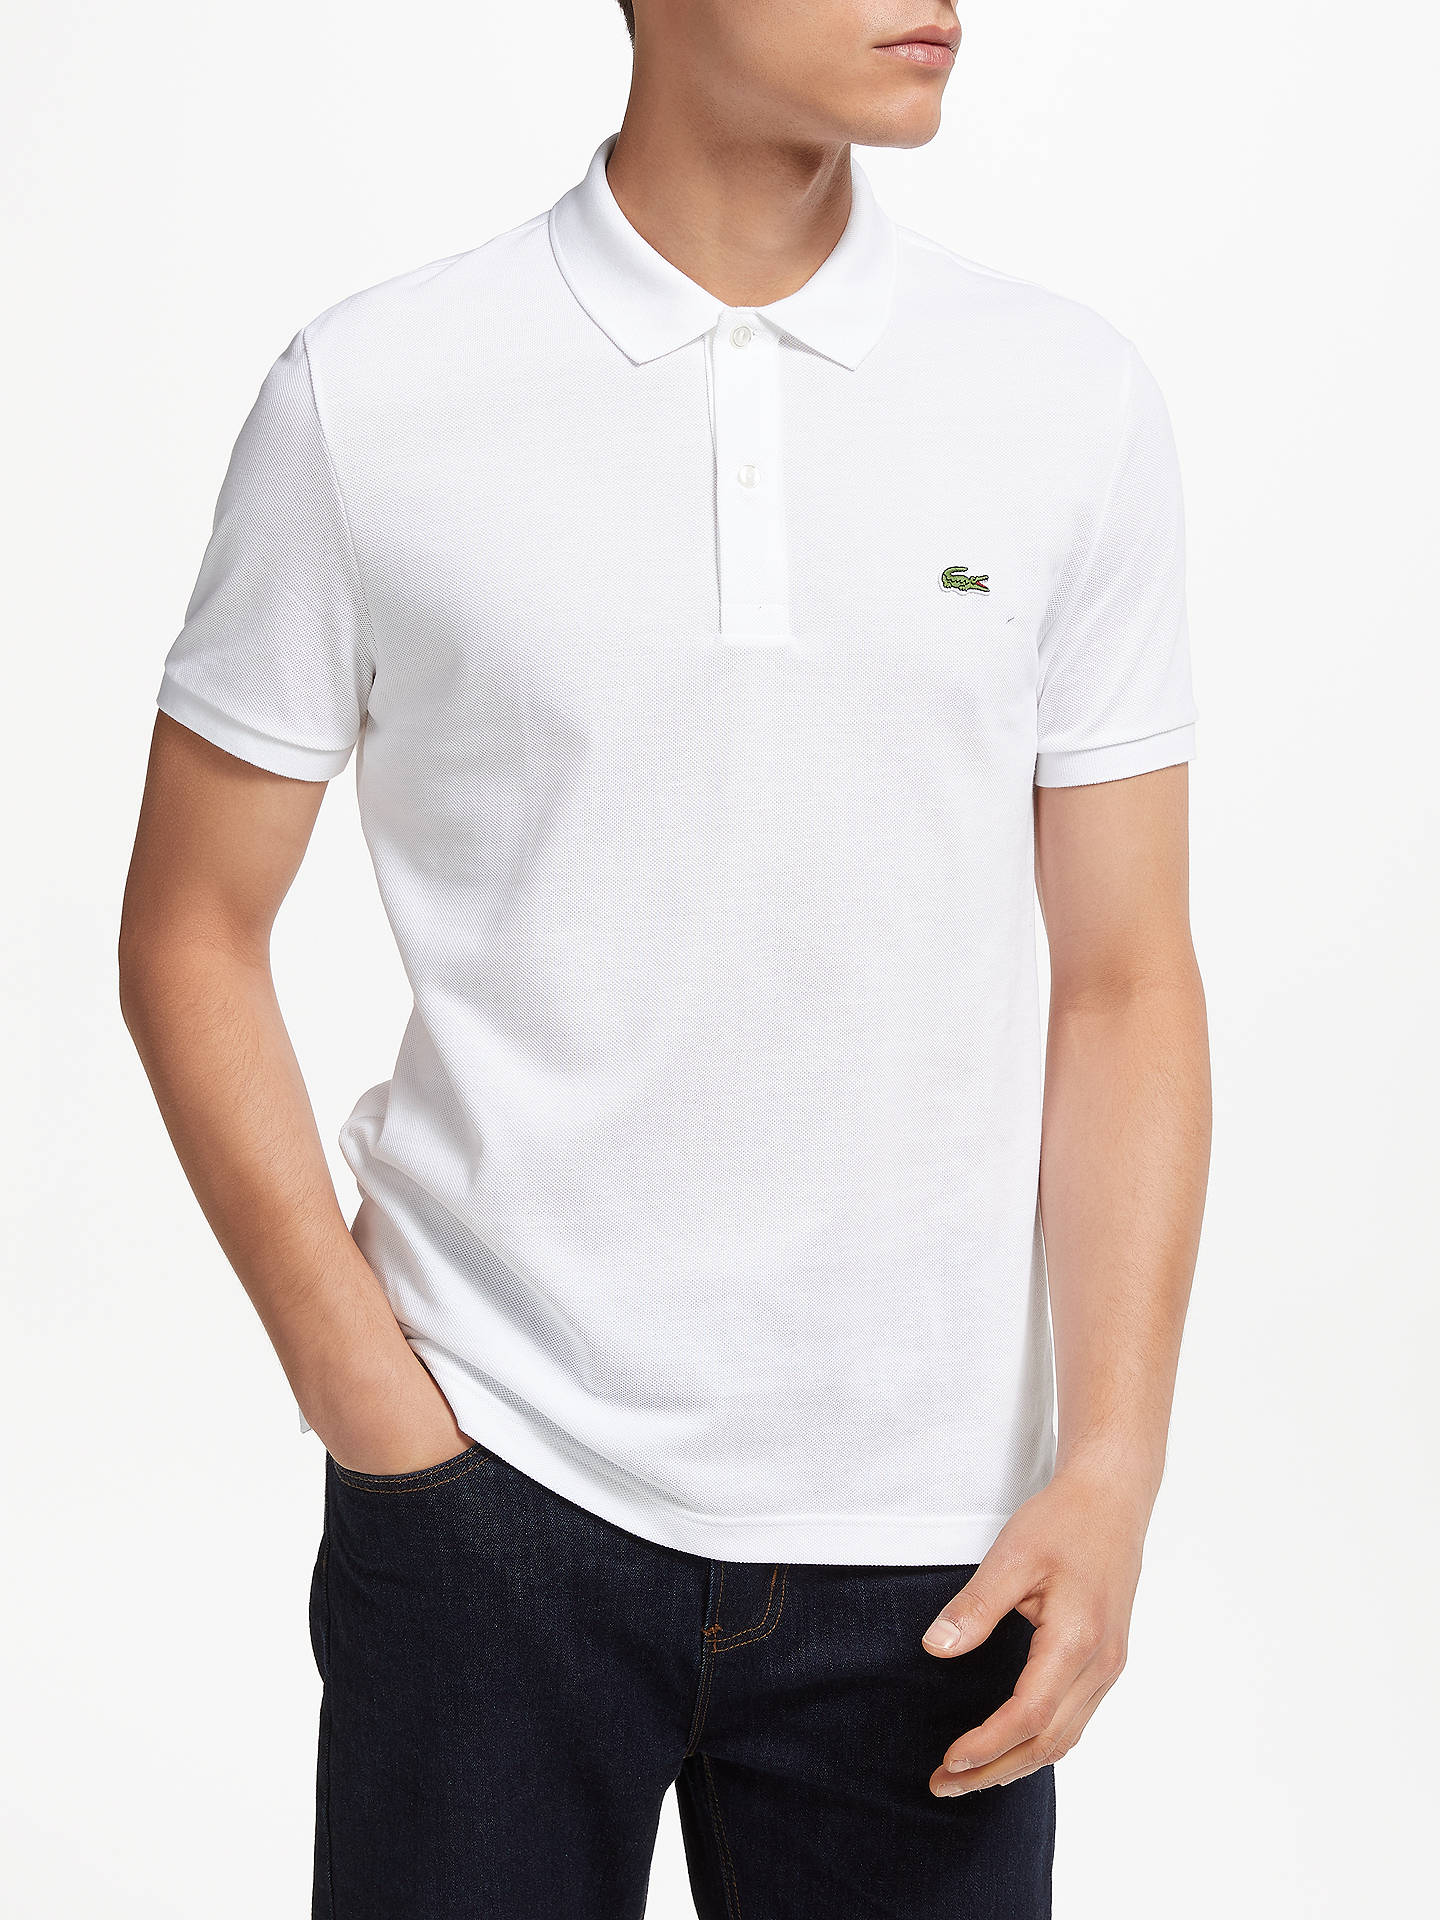 a6a8c05dba Lacoste Classic Slim Fit Short Sleeve Polo Shirt at John Lewis ...